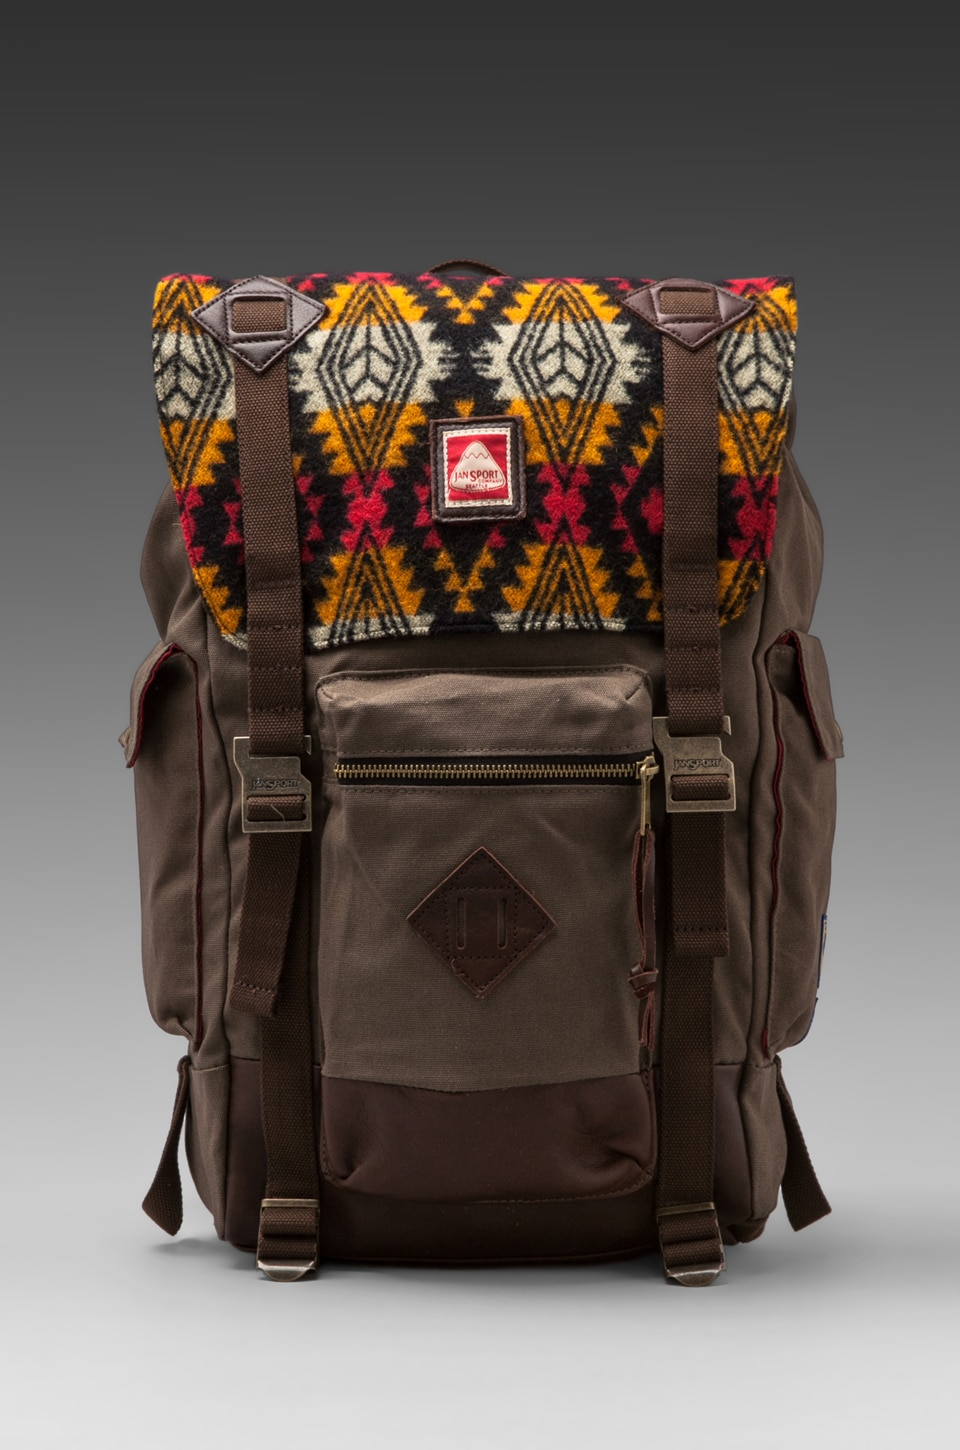 Jansport x Pendleton Adobe Backpack in Print